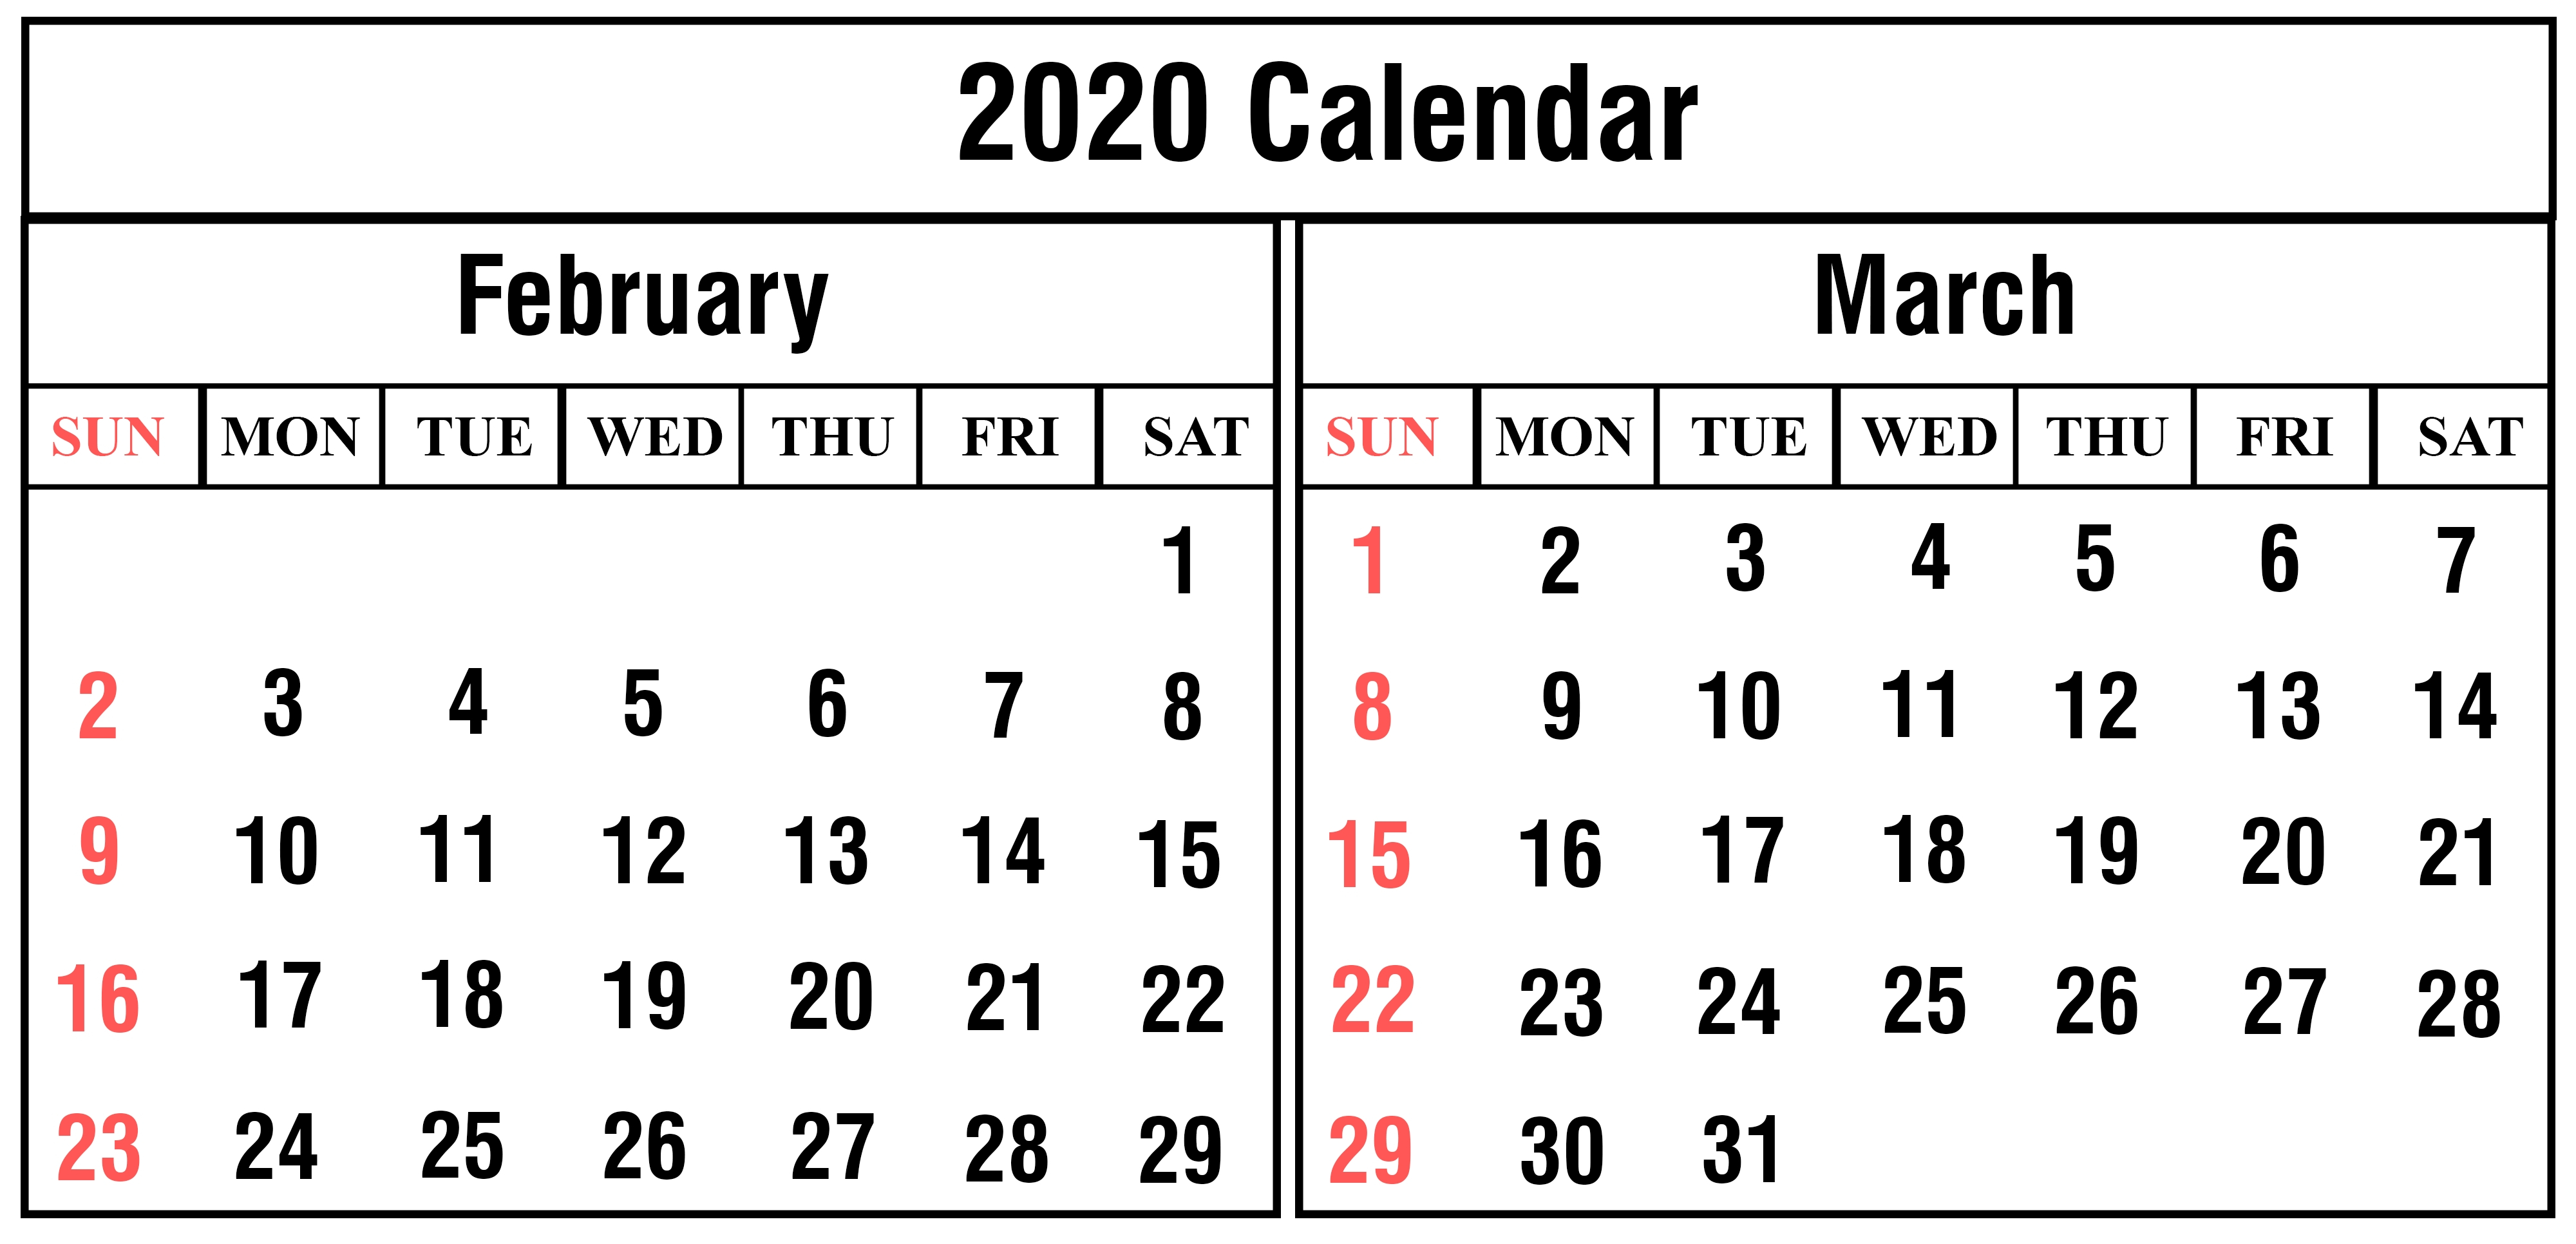 Calendar For February And March 2020 | Calendar Template regarding Feb And March 2020